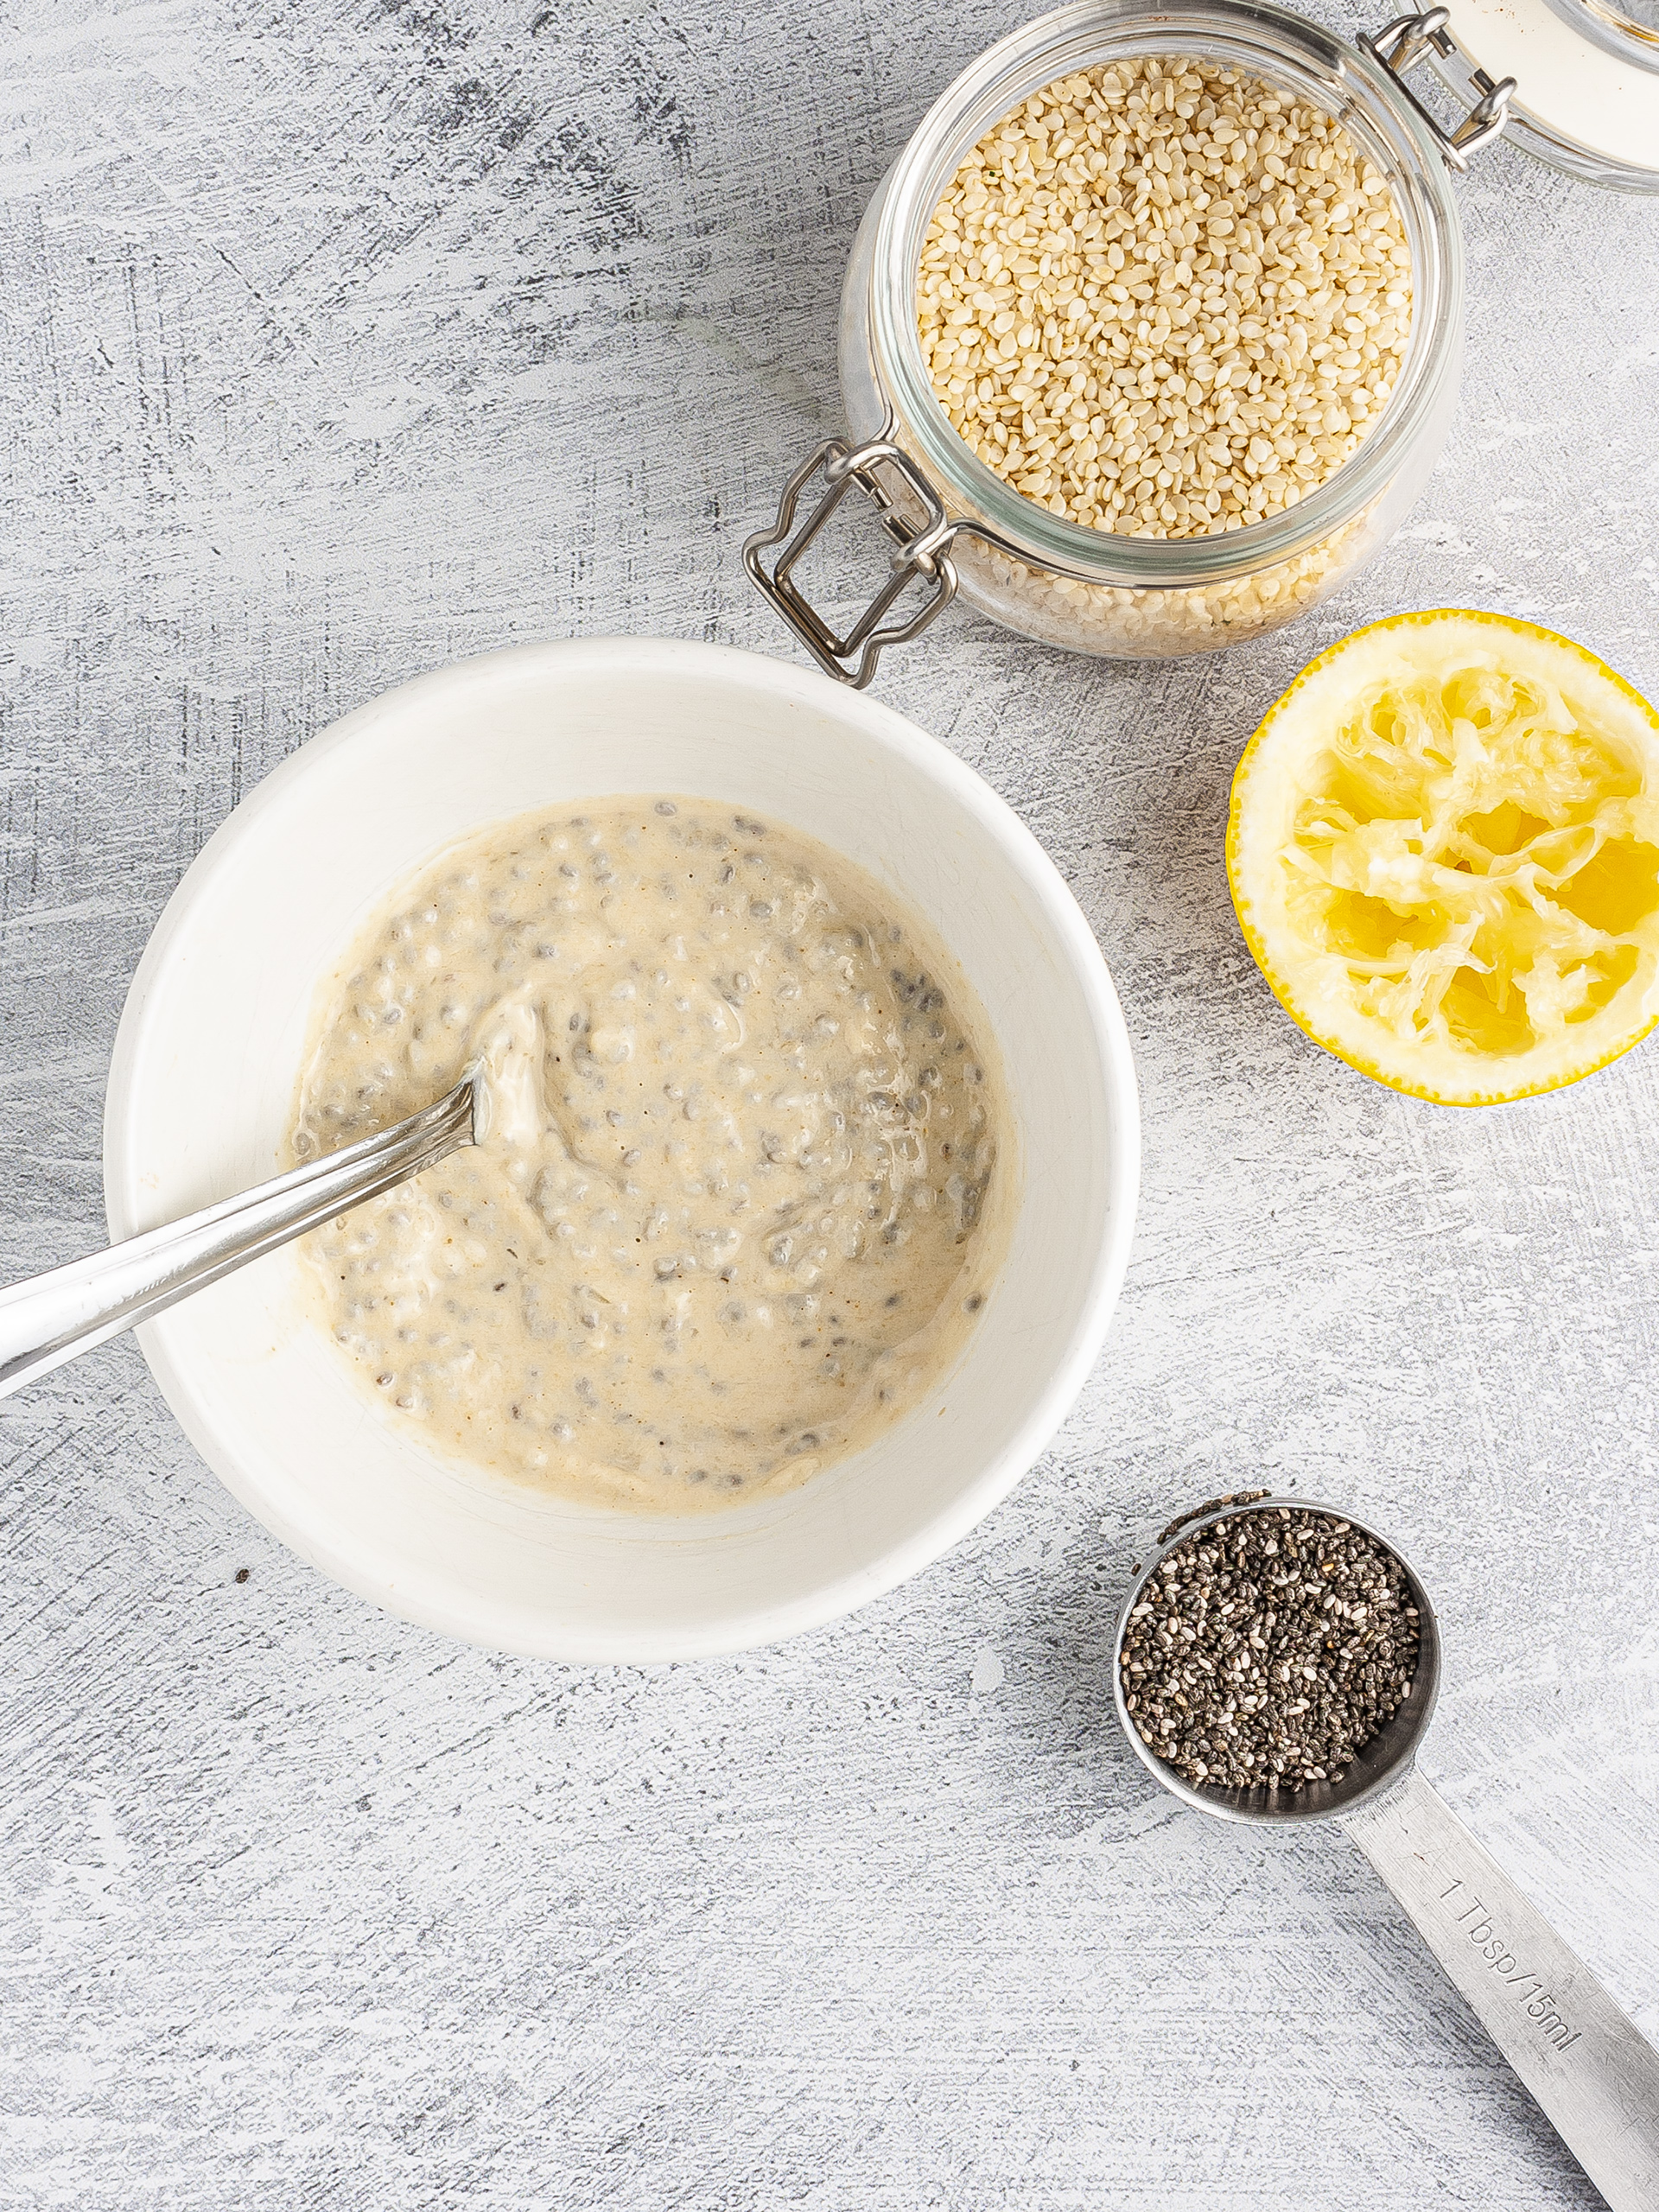 Dressing with tahini, lemon, and chia seeds.